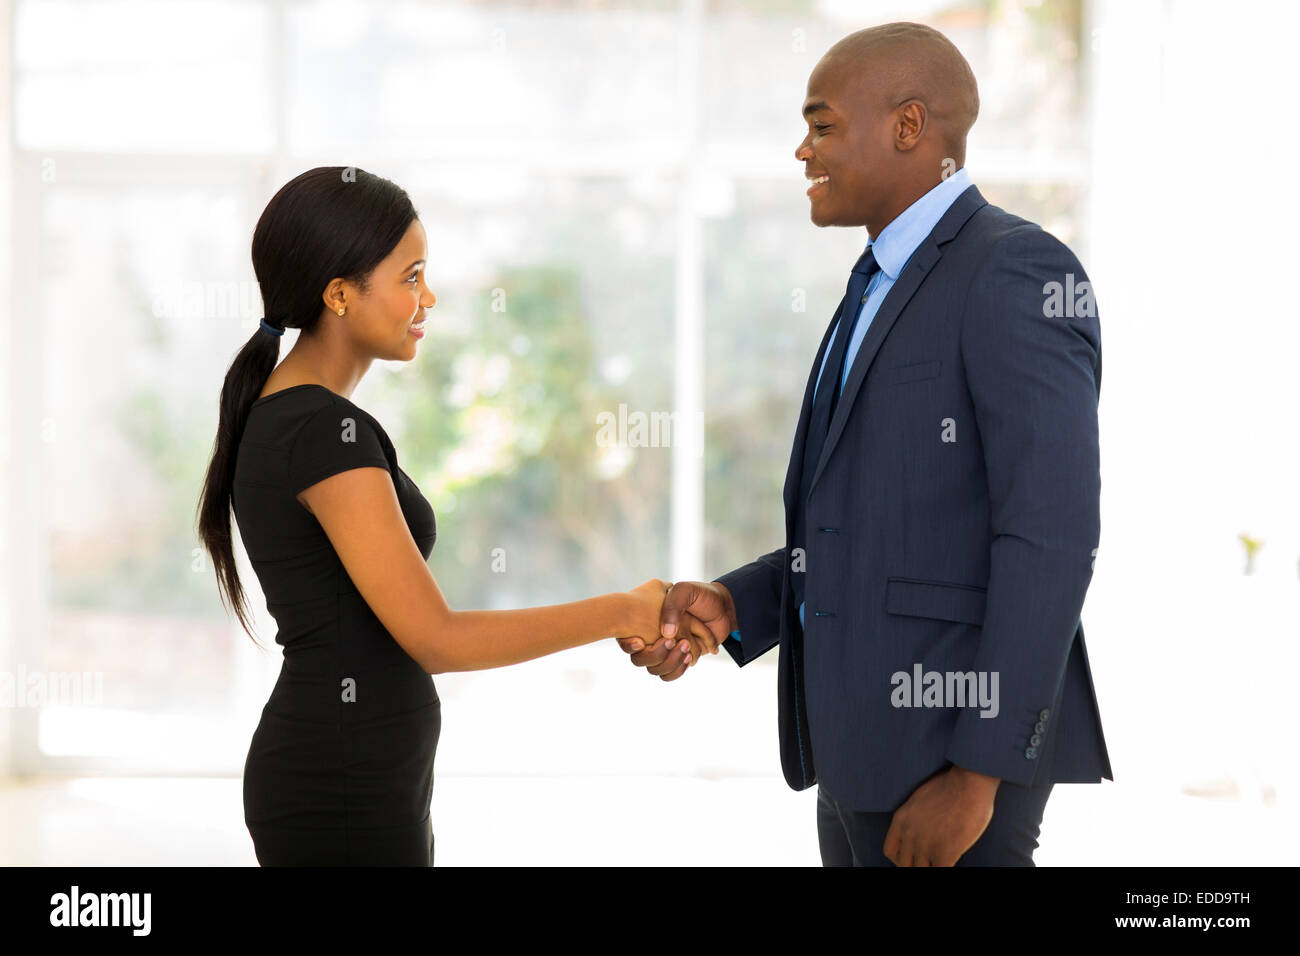 smiling African businessman handshaking with young businesswoman in office - Stock Image